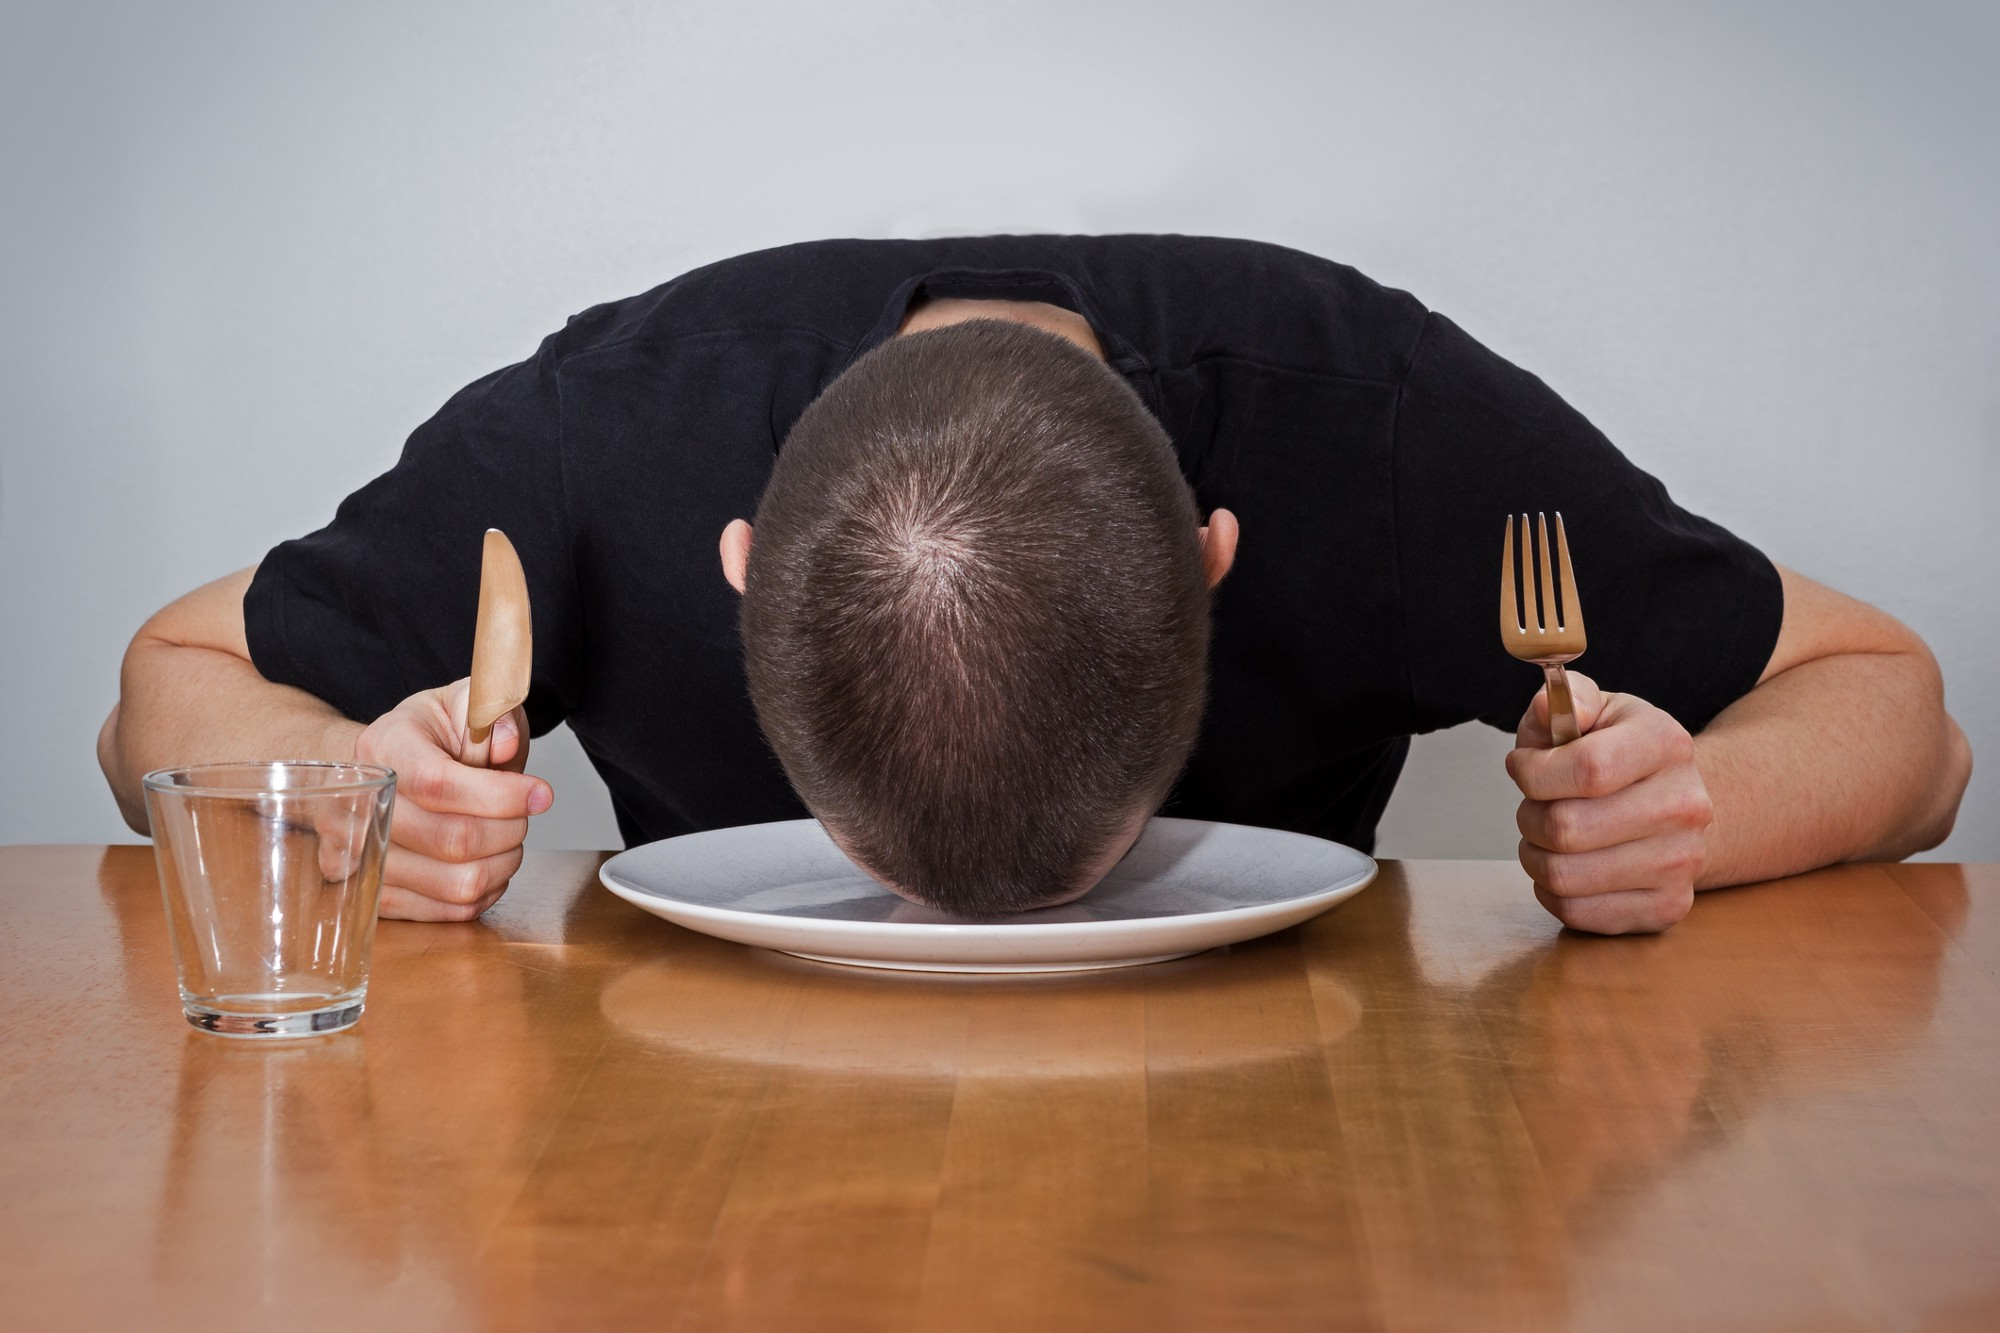 A person holding a fork and knife at a dinner table, resting their head on an empty plate.